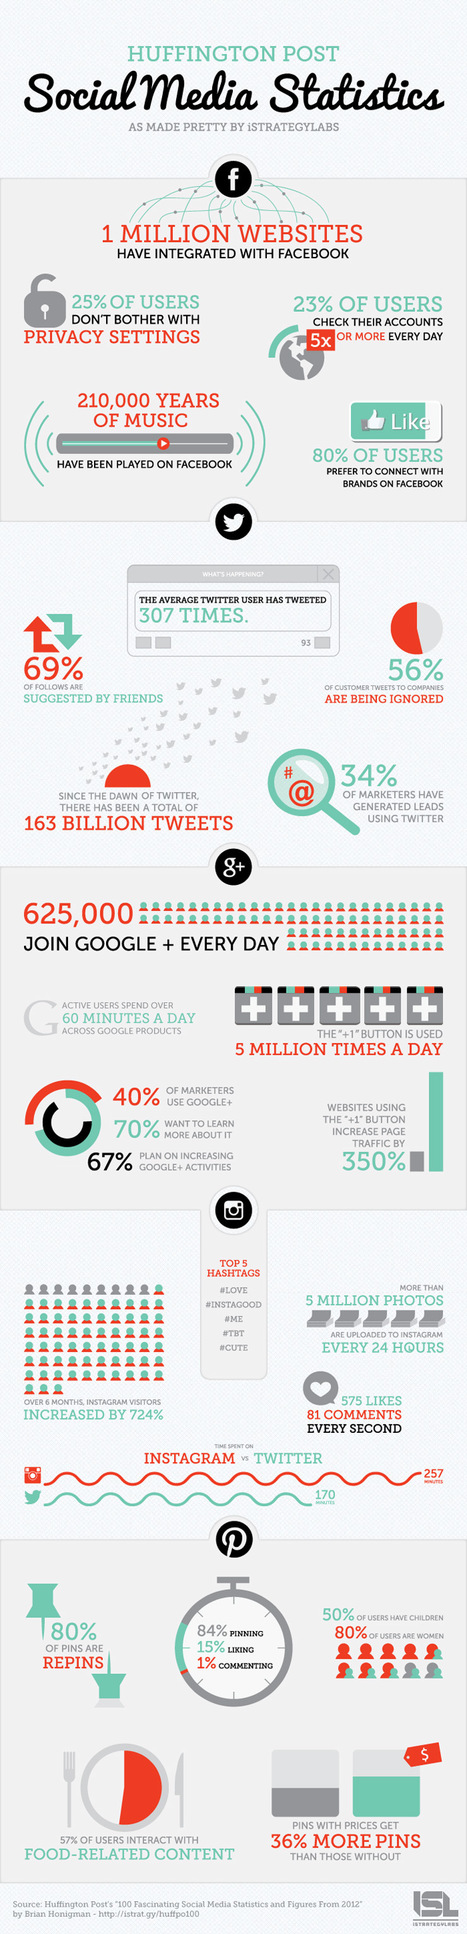 Social Media Statistics: Huffington Post Infographic | AtDotCom Social media | Scoop.it